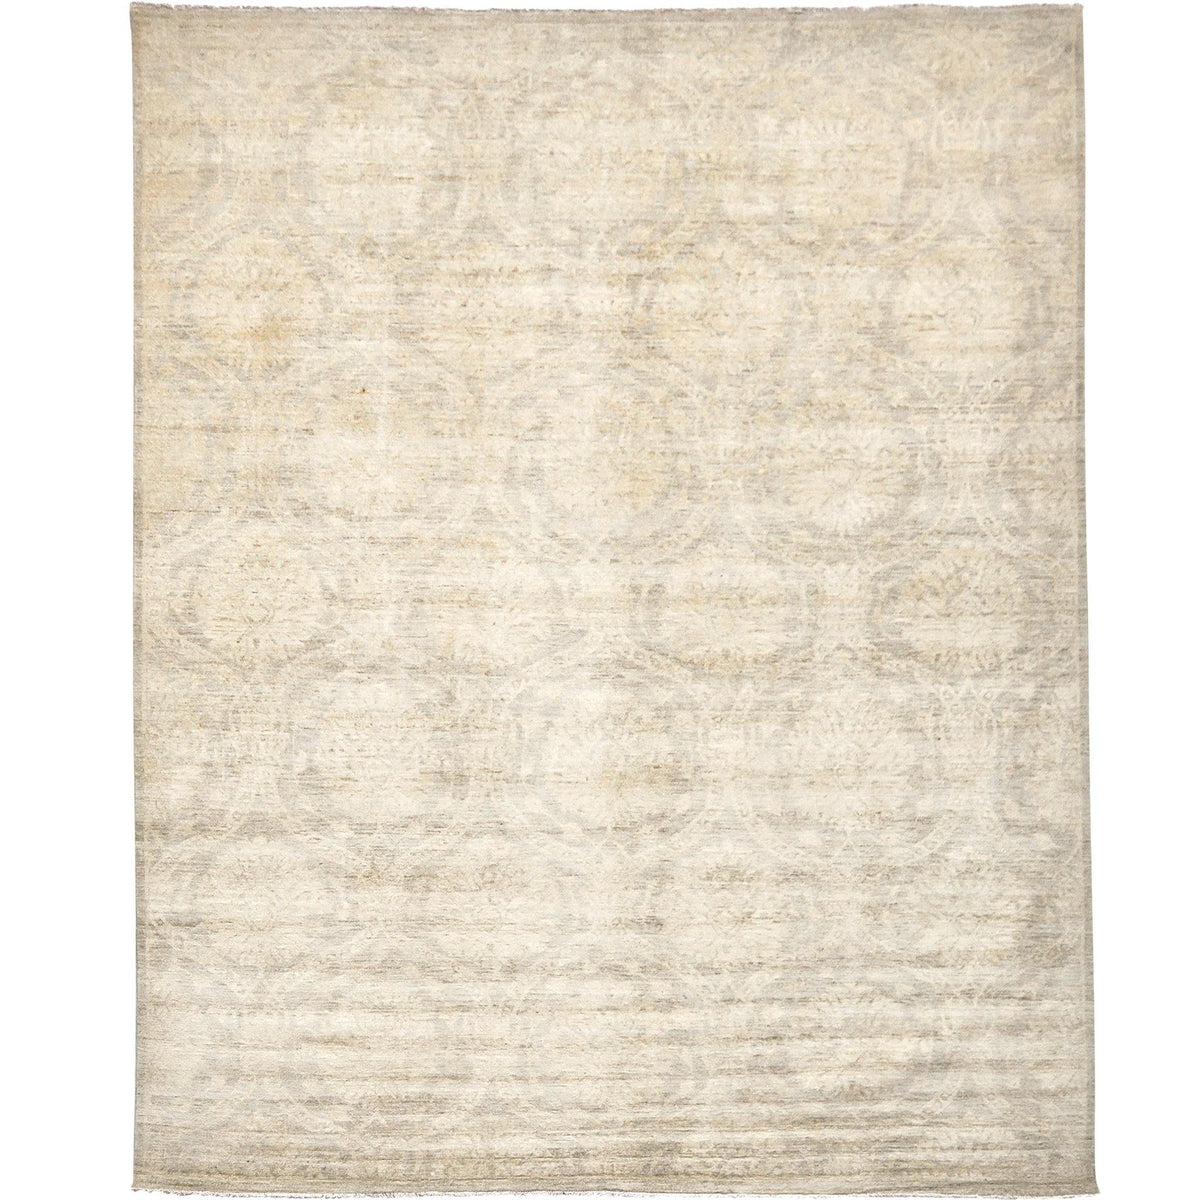 Fine Hand-knotted Colour Reform Rug 267cm x 359cm Persian-Rug | House-of-Haghi | NewMarket | Auckland | NZ | Handmade Persian Rugs | Hand Knotted Persian Rugs